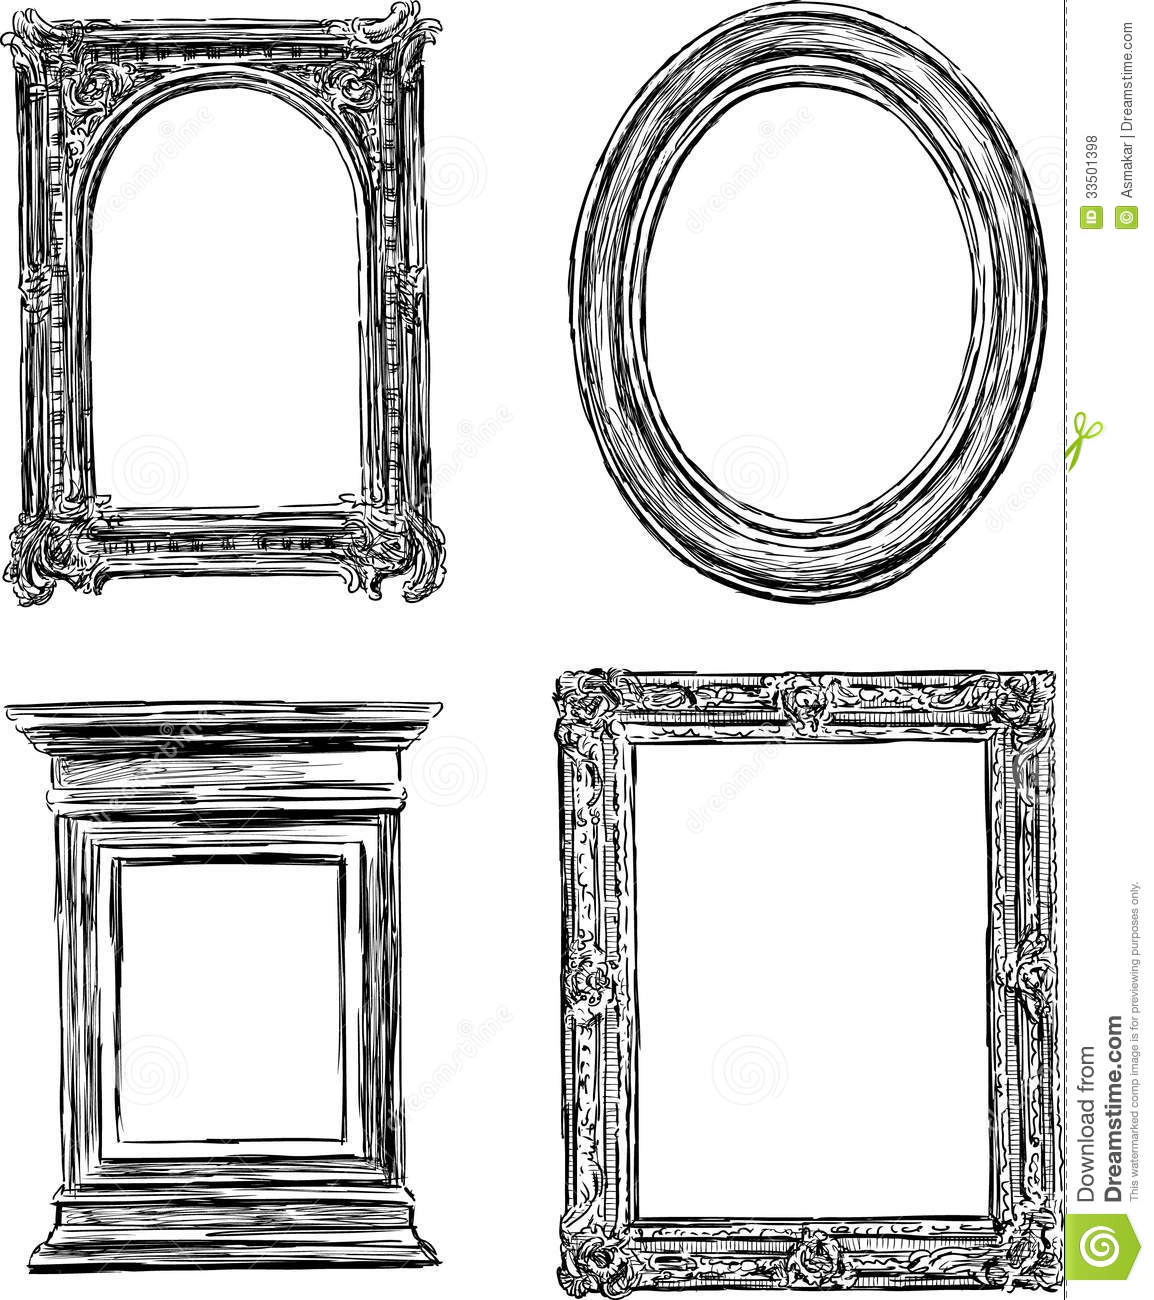 antique frames royalty free stock photos image 33501398. Black Bedroom Furniture Sets. Home Design Ideas